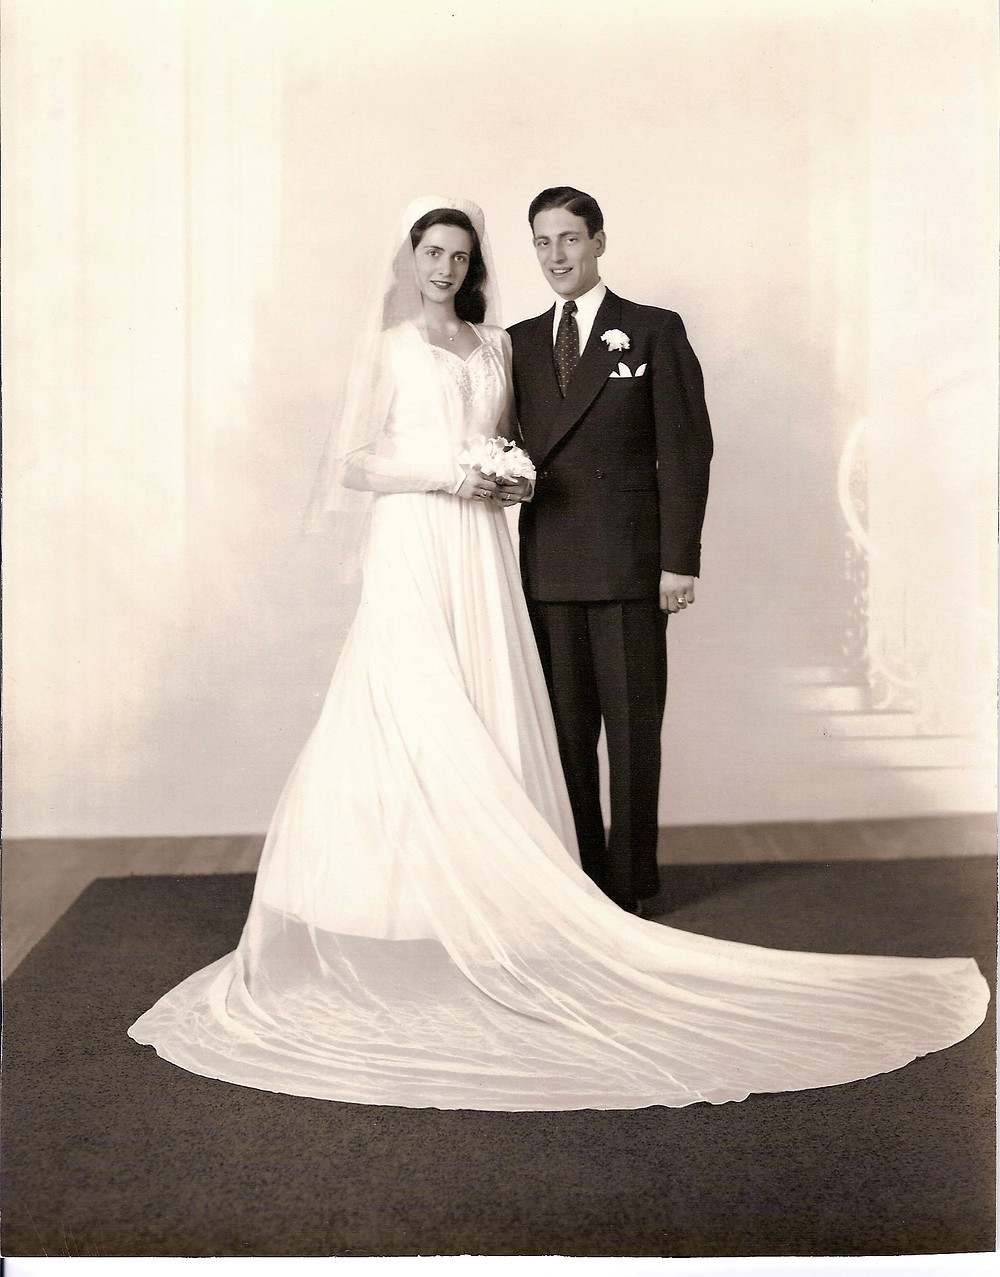 Margaret and Walter Stark wedding picture